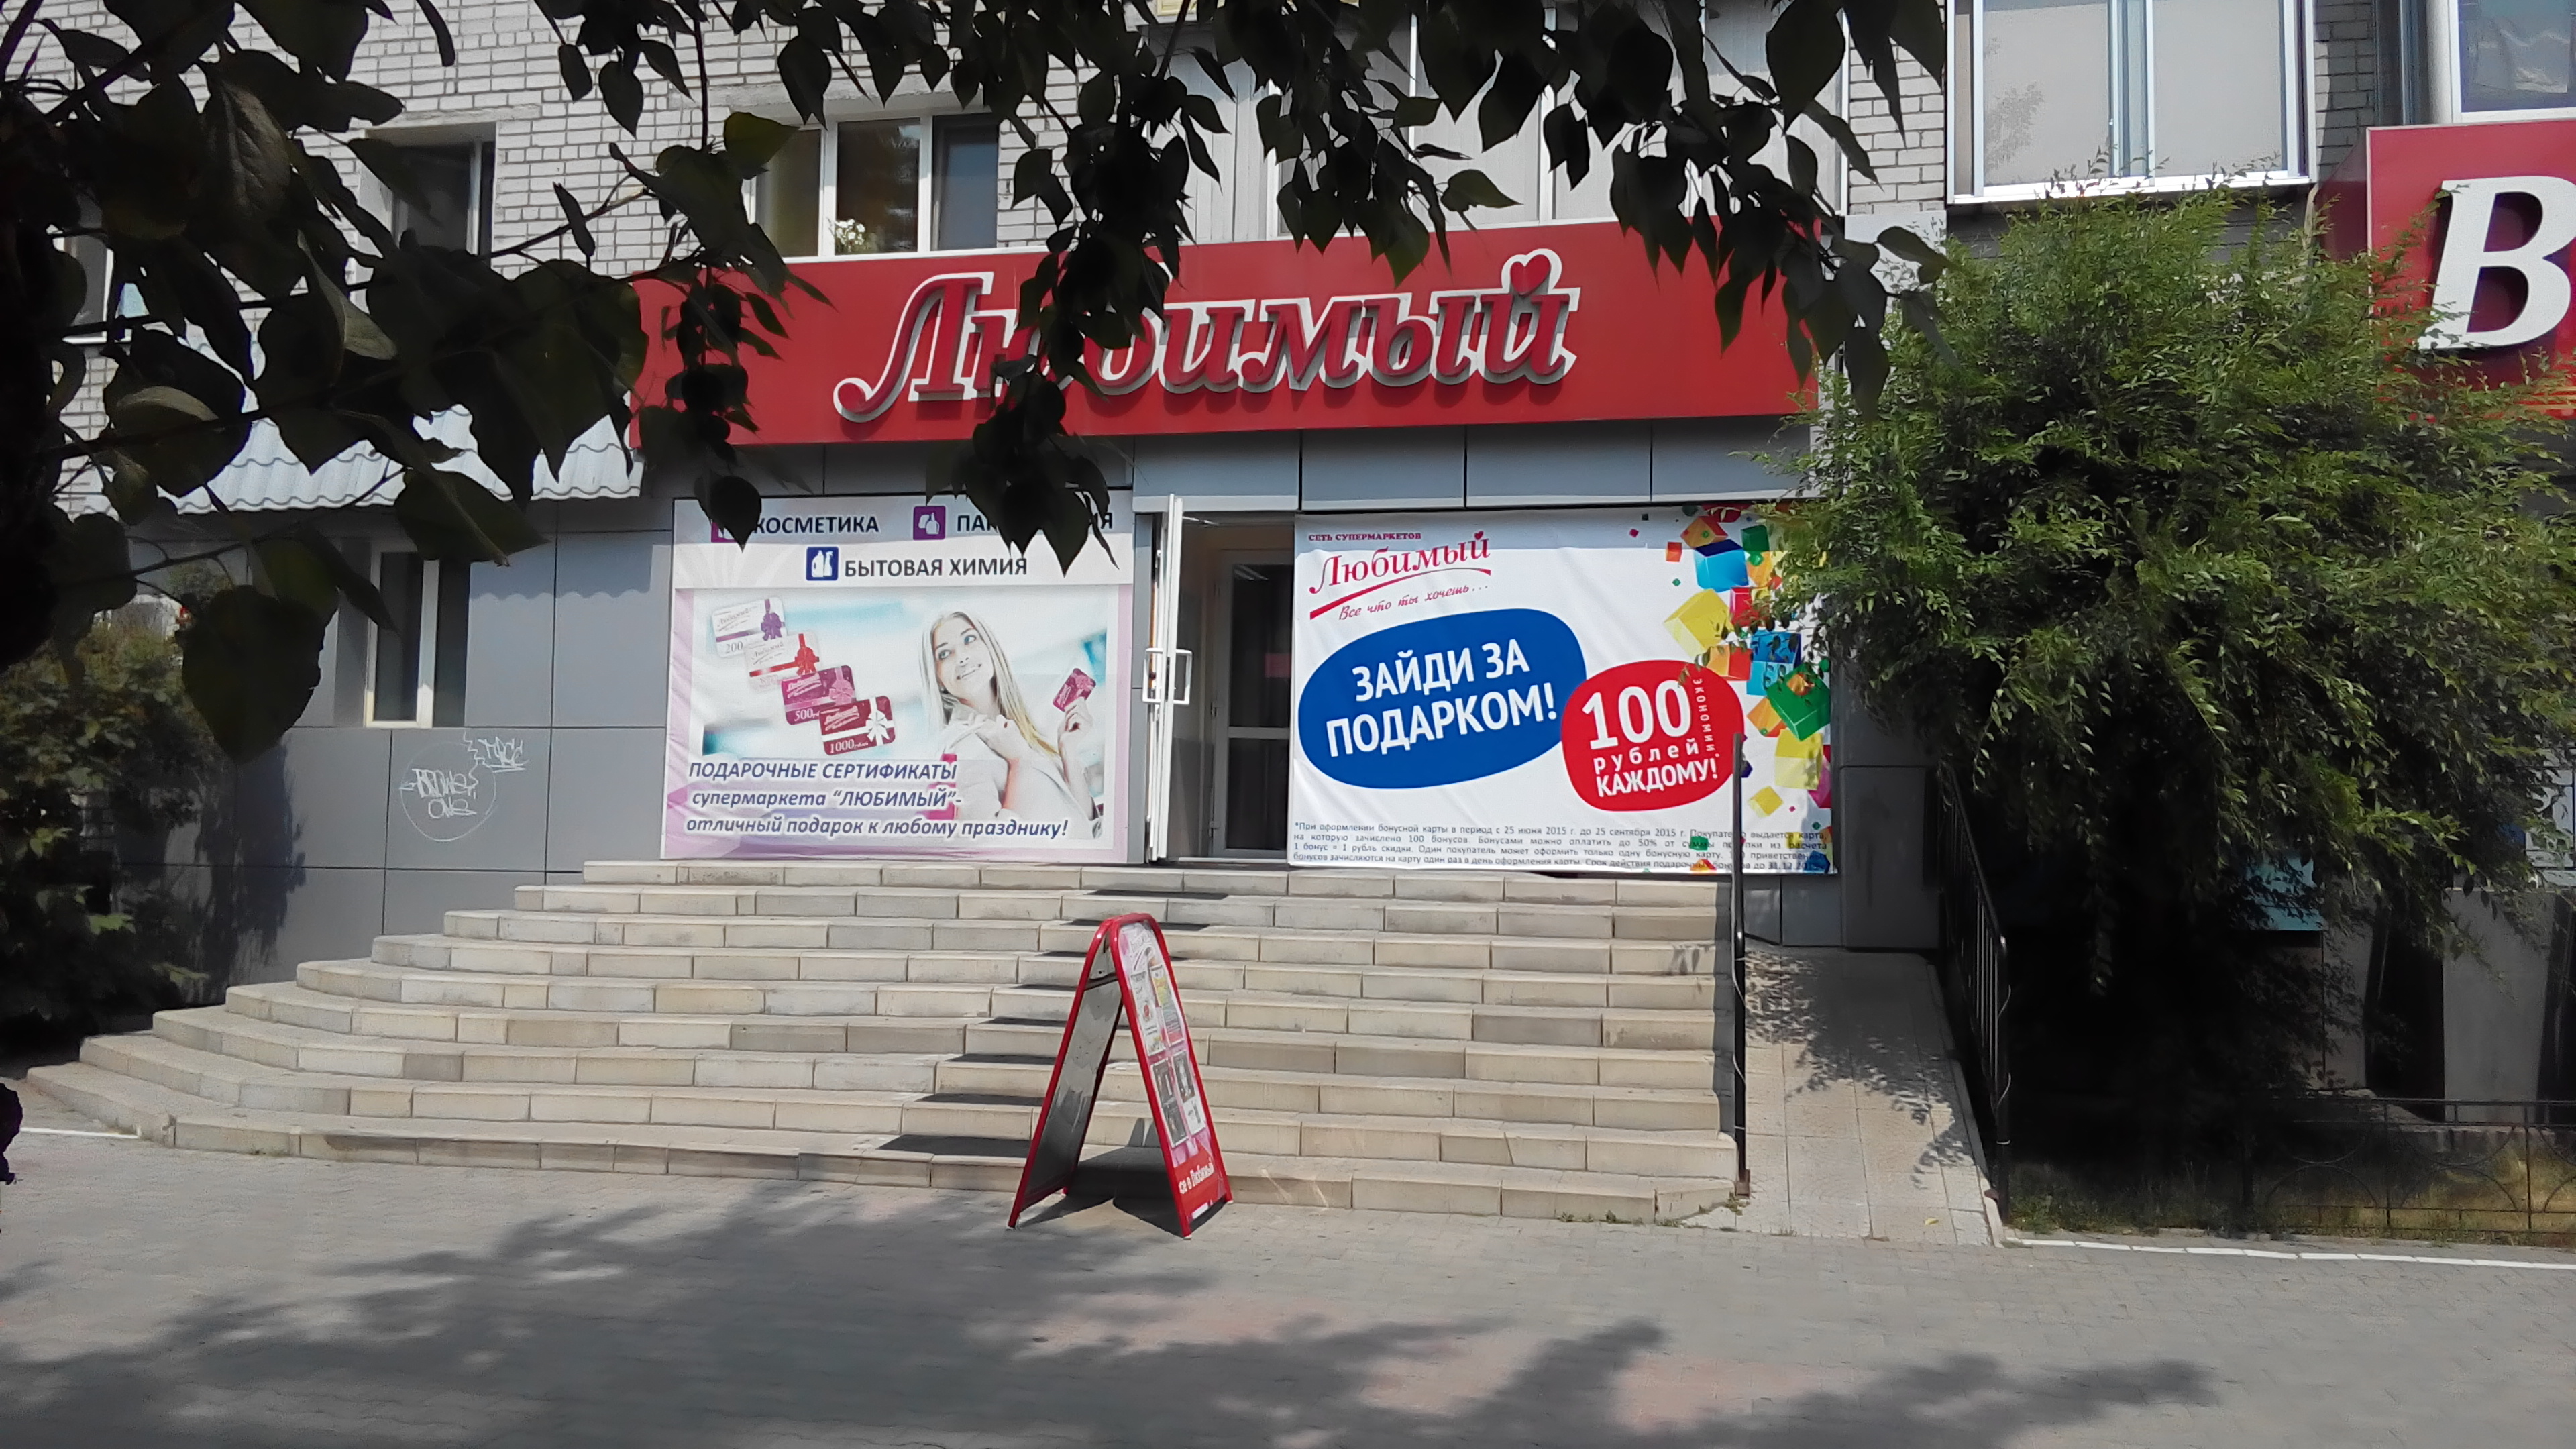 In summer 2015, the AYUSS wholesale and retail company, the largest in the Russian Far East, completely moved its retail shops to a bonus loyalty programme